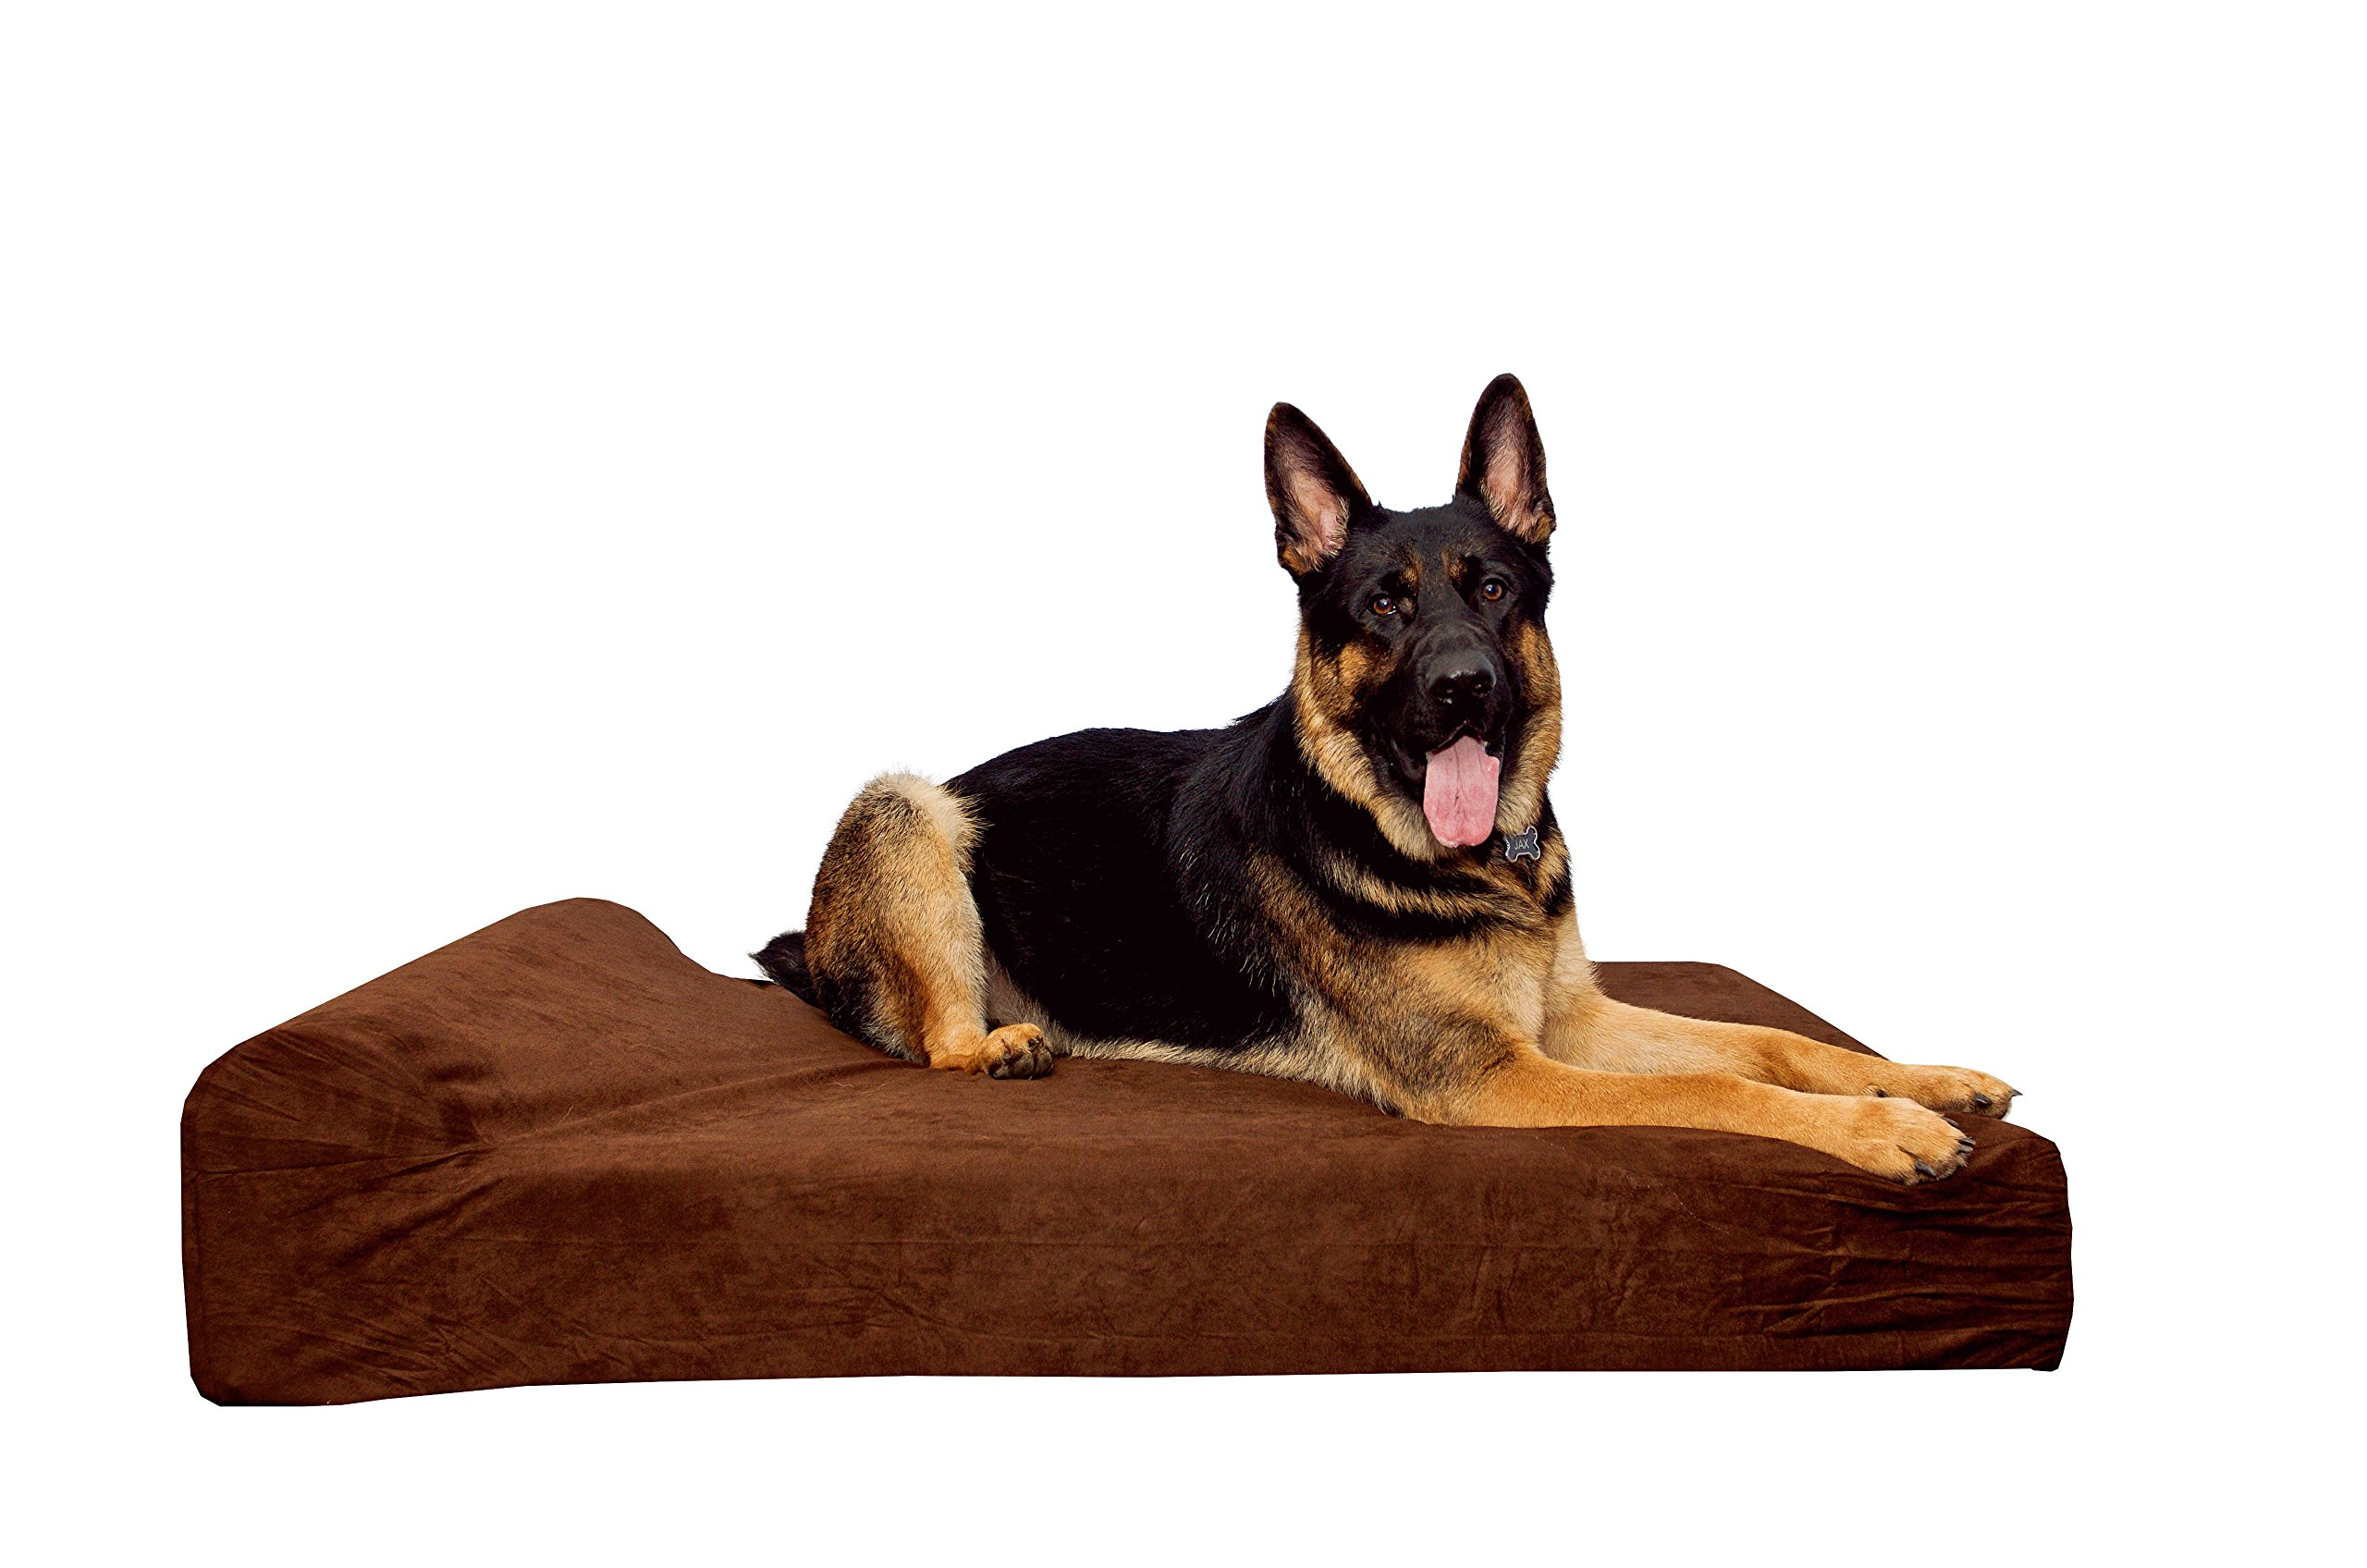 Simien Pets Dark Chocolate Extra Large Orthopedic Dog Bed, XL Waterproof Liner Included, 9'' Pillow Top Headrest, Non-Slip Bottom, Hip Dysplasia and Joint Support, Firm Highest Quality CertiPur Foam